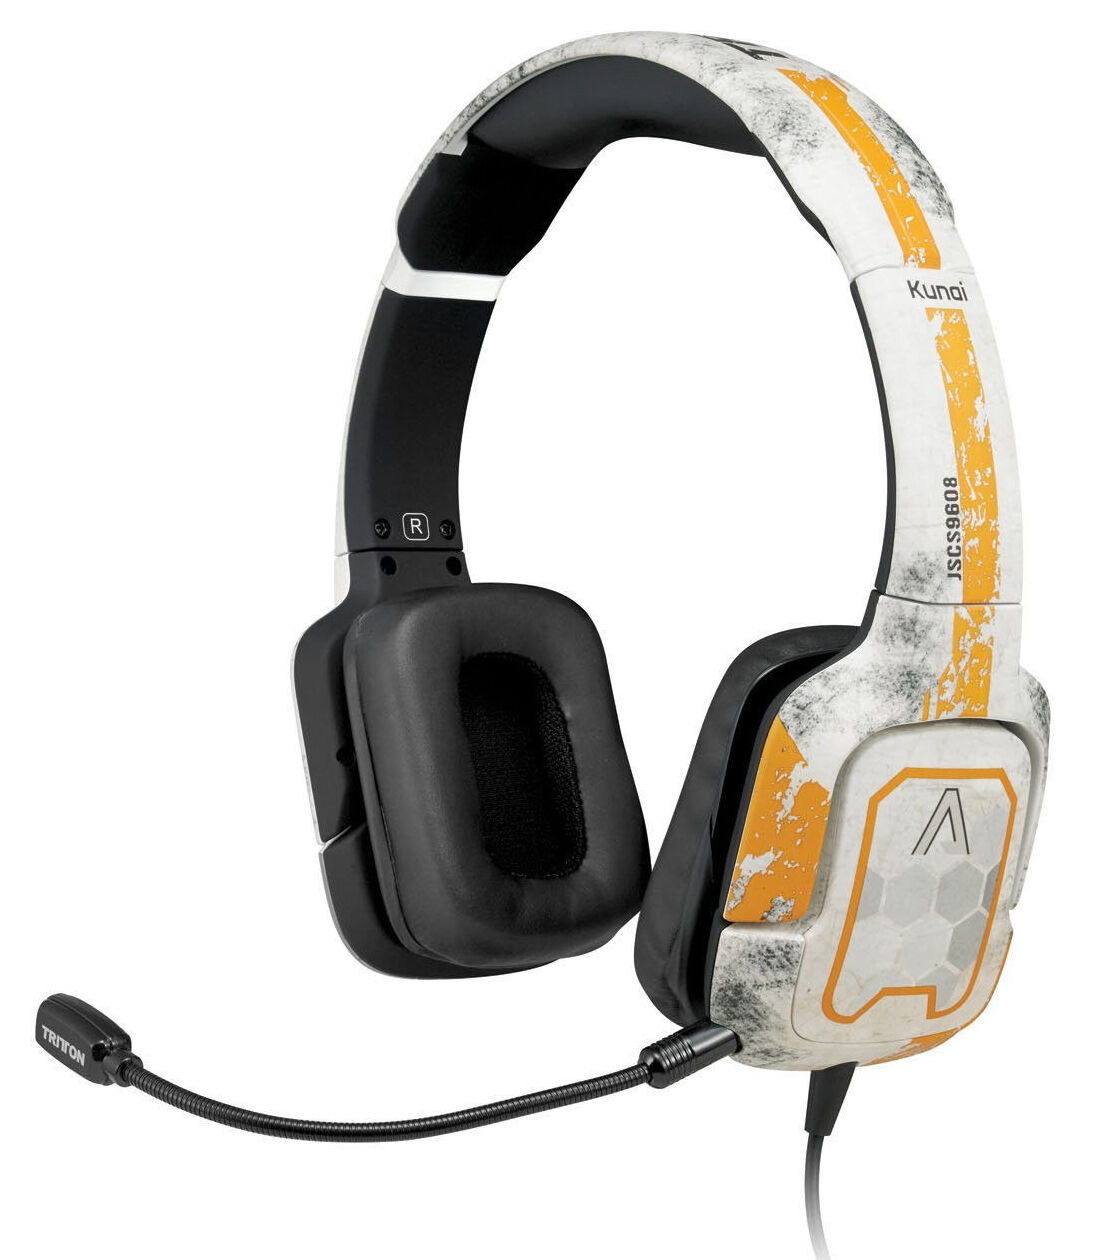 Top 10 Xbox 360 Gaming Headsets | eBay